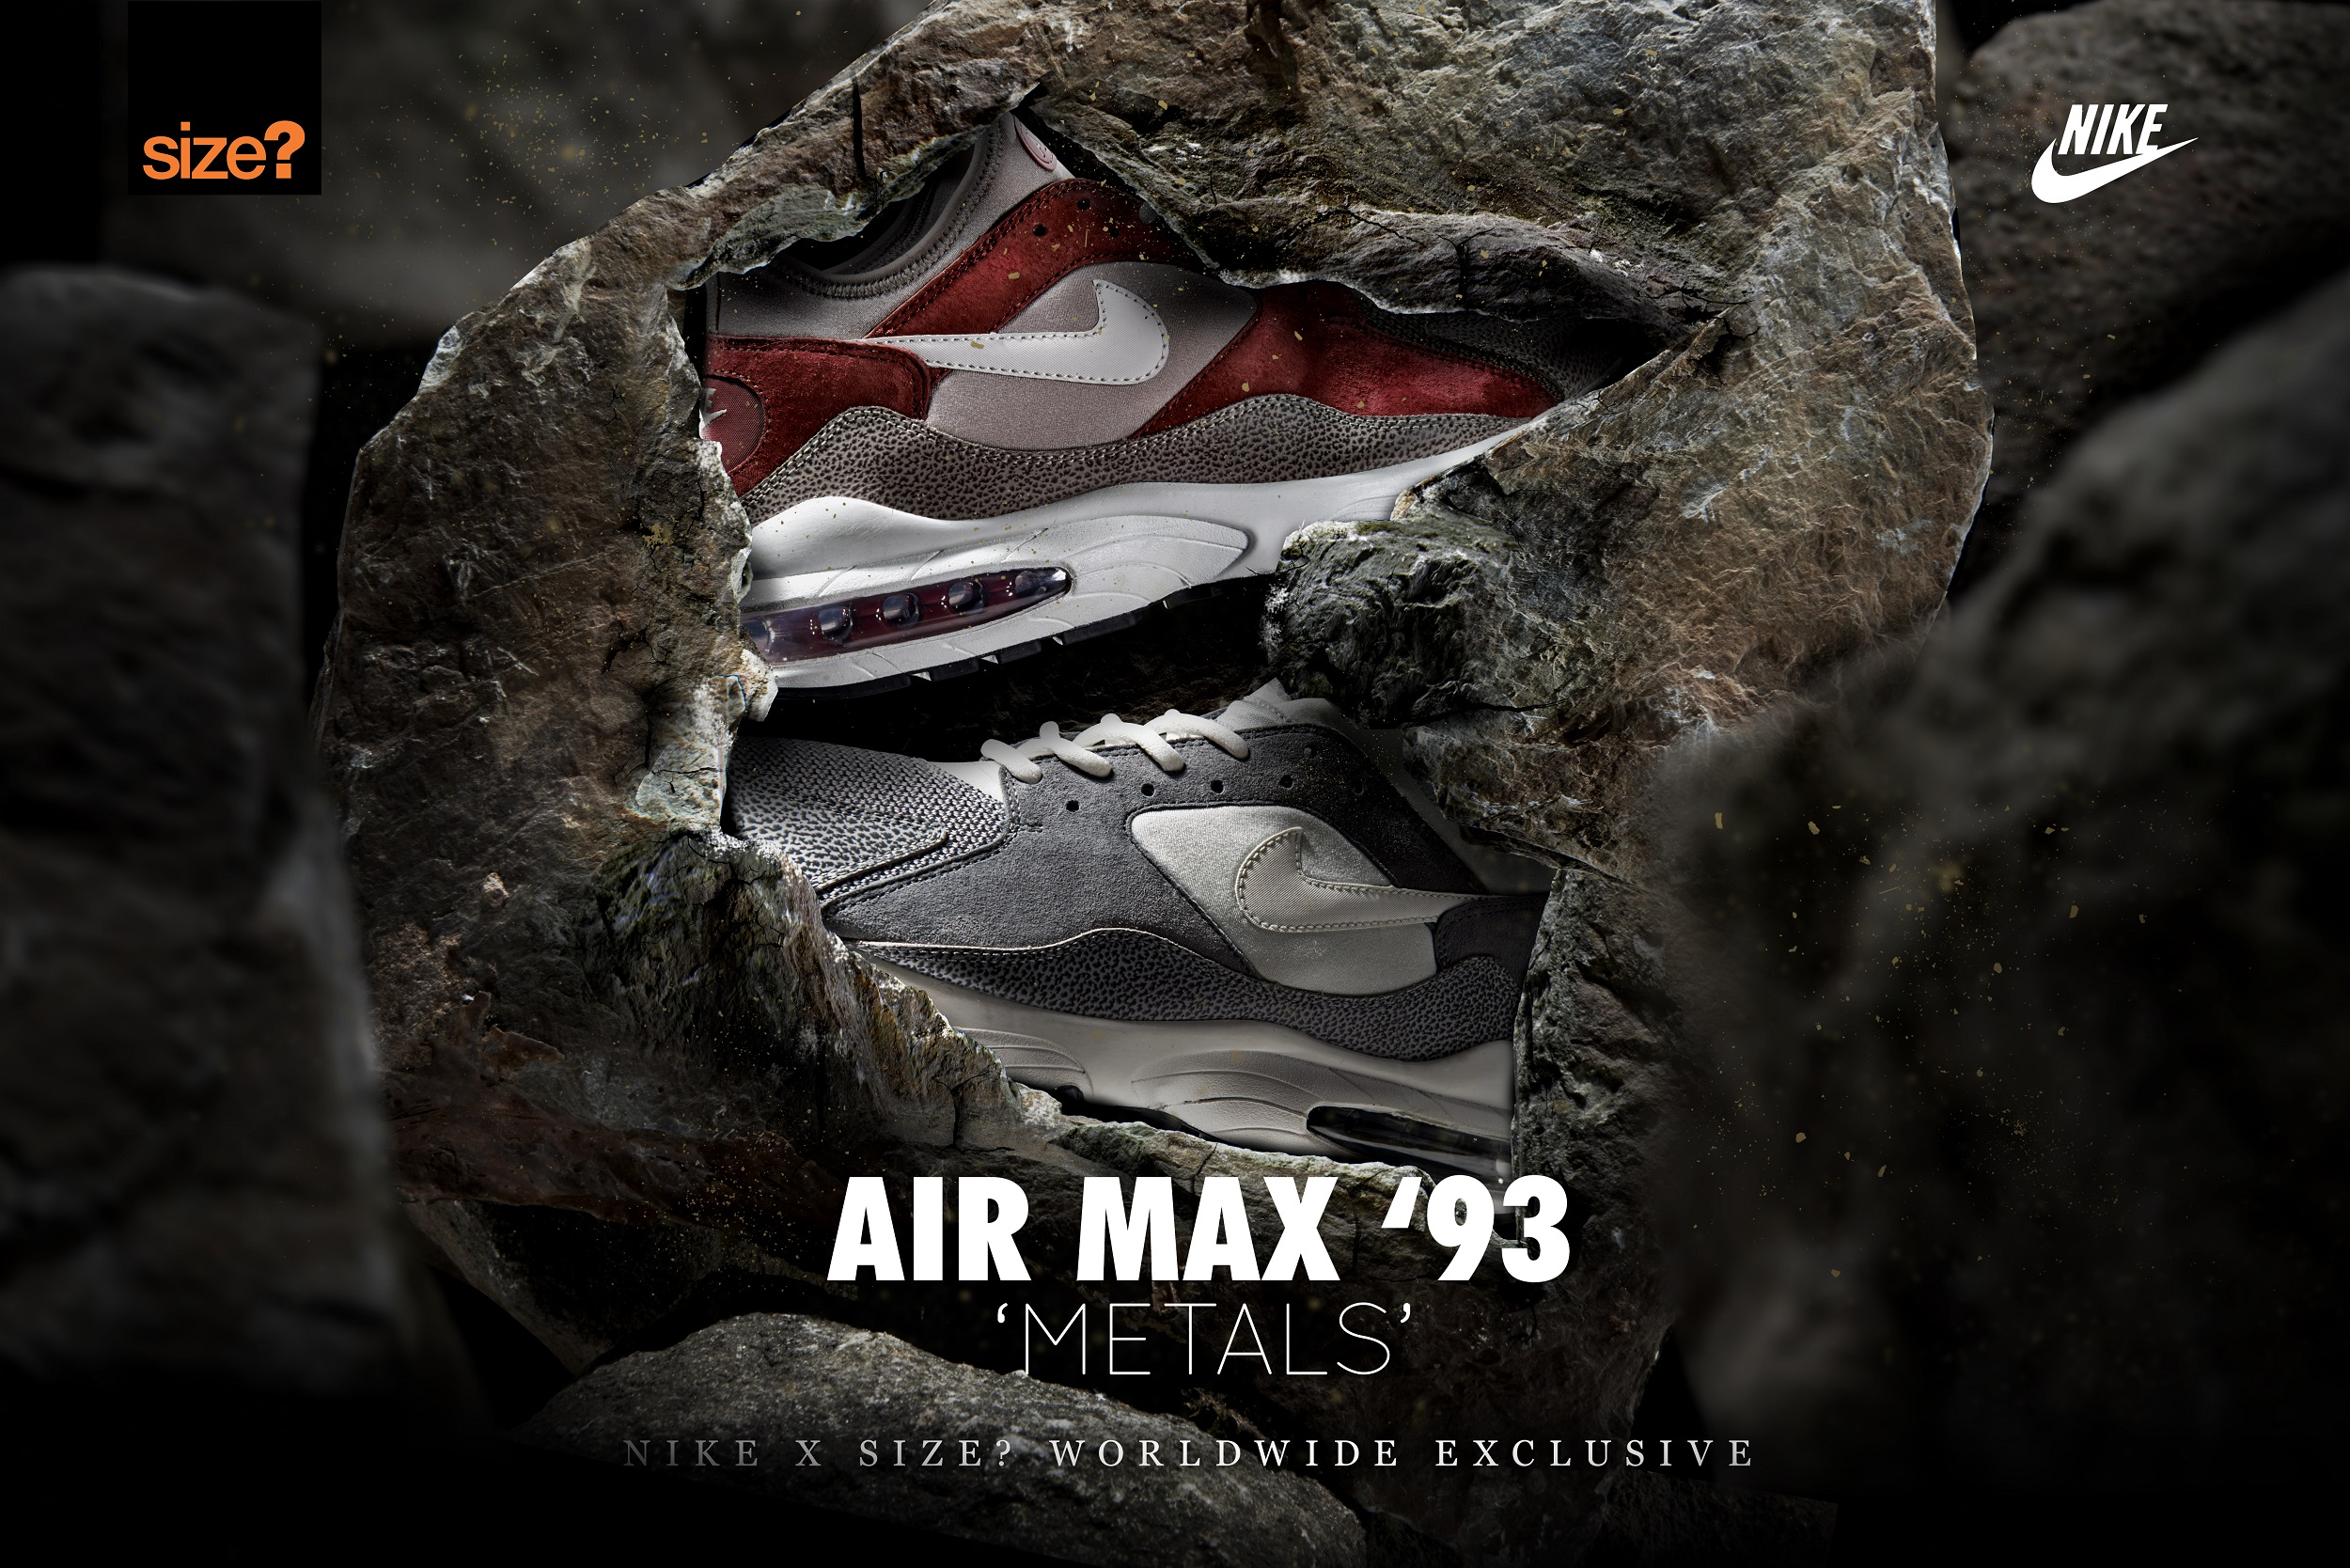 Nike Air Max 93 'Metals' – size? Worldwide exclusive